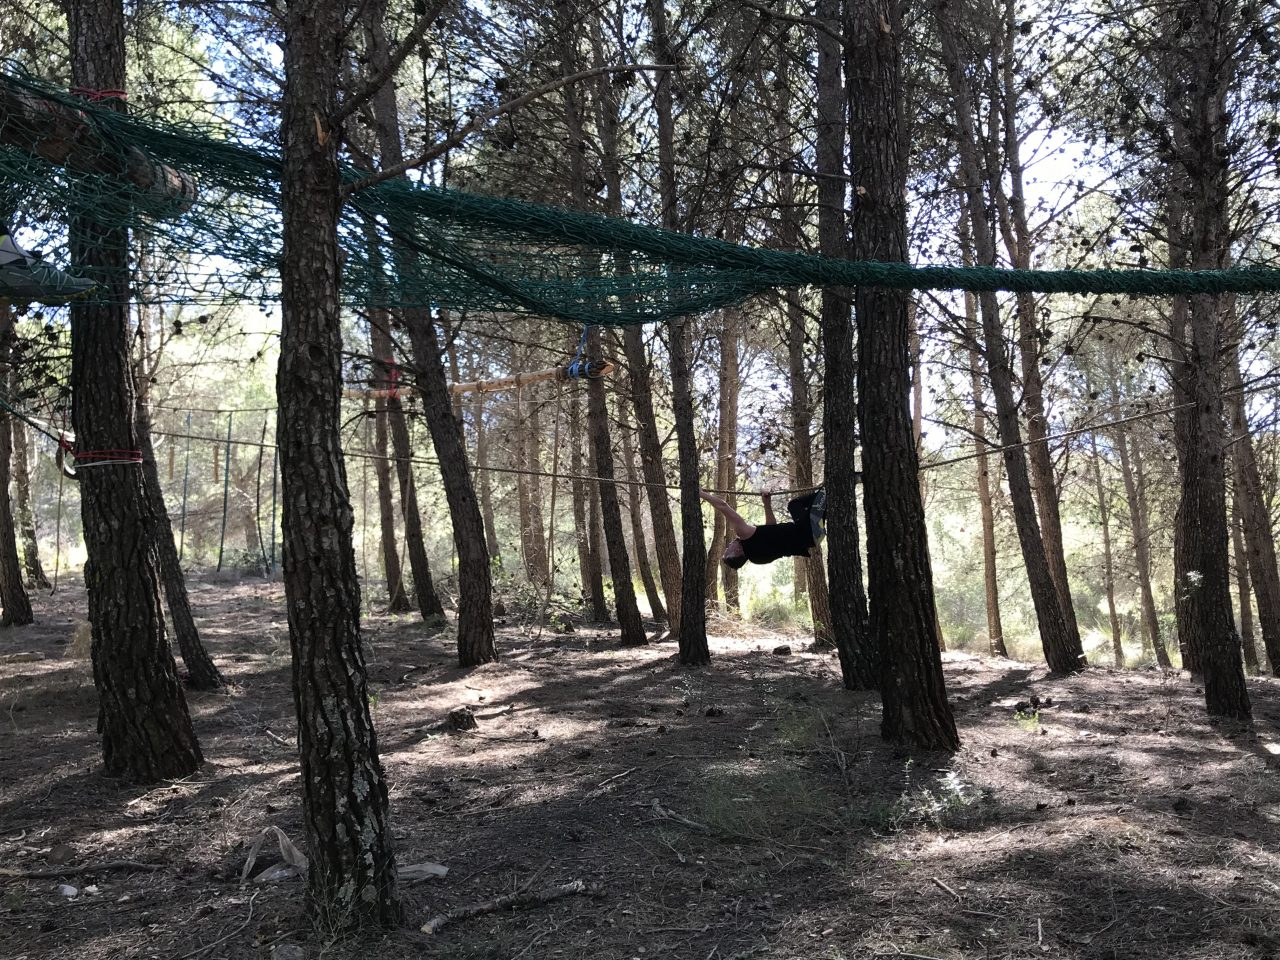 survivalrunnen in Spanje. survival tijdens outdoorvakantie in Spanje